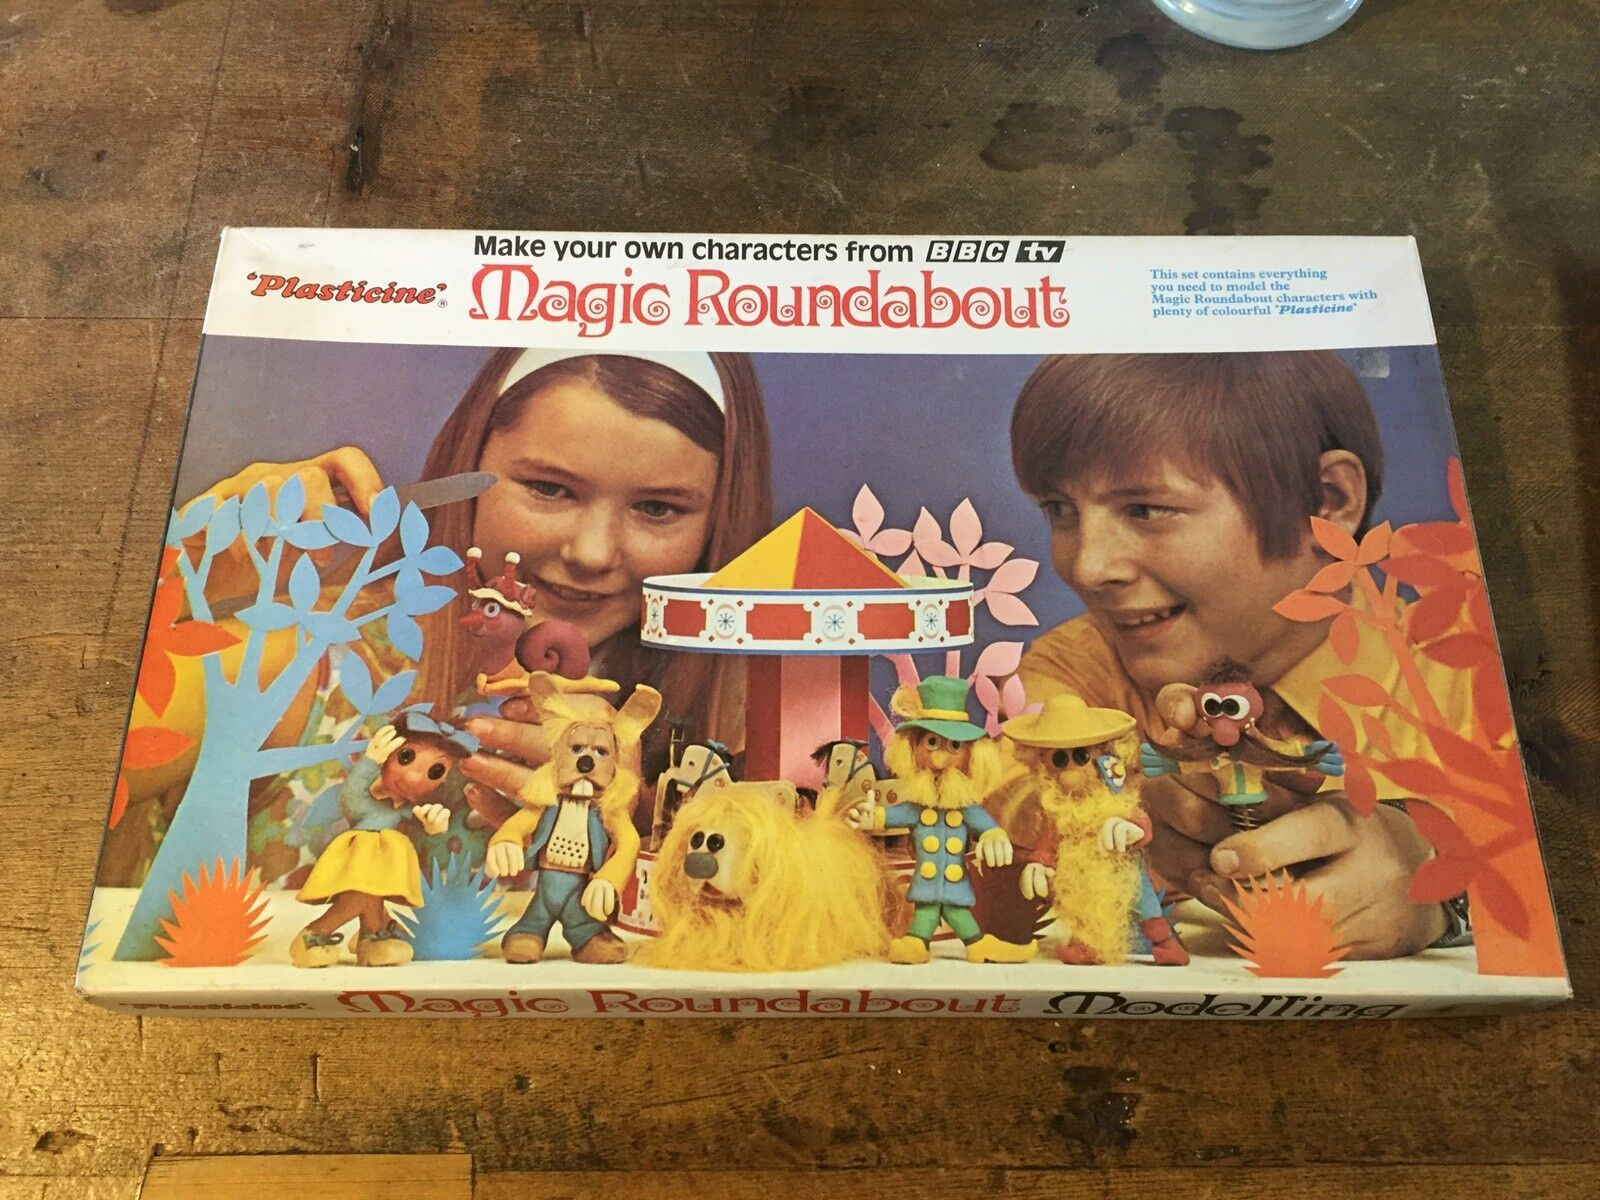 Vintage Magic Roundabout Plasticine Modelling Kit (c) 1970